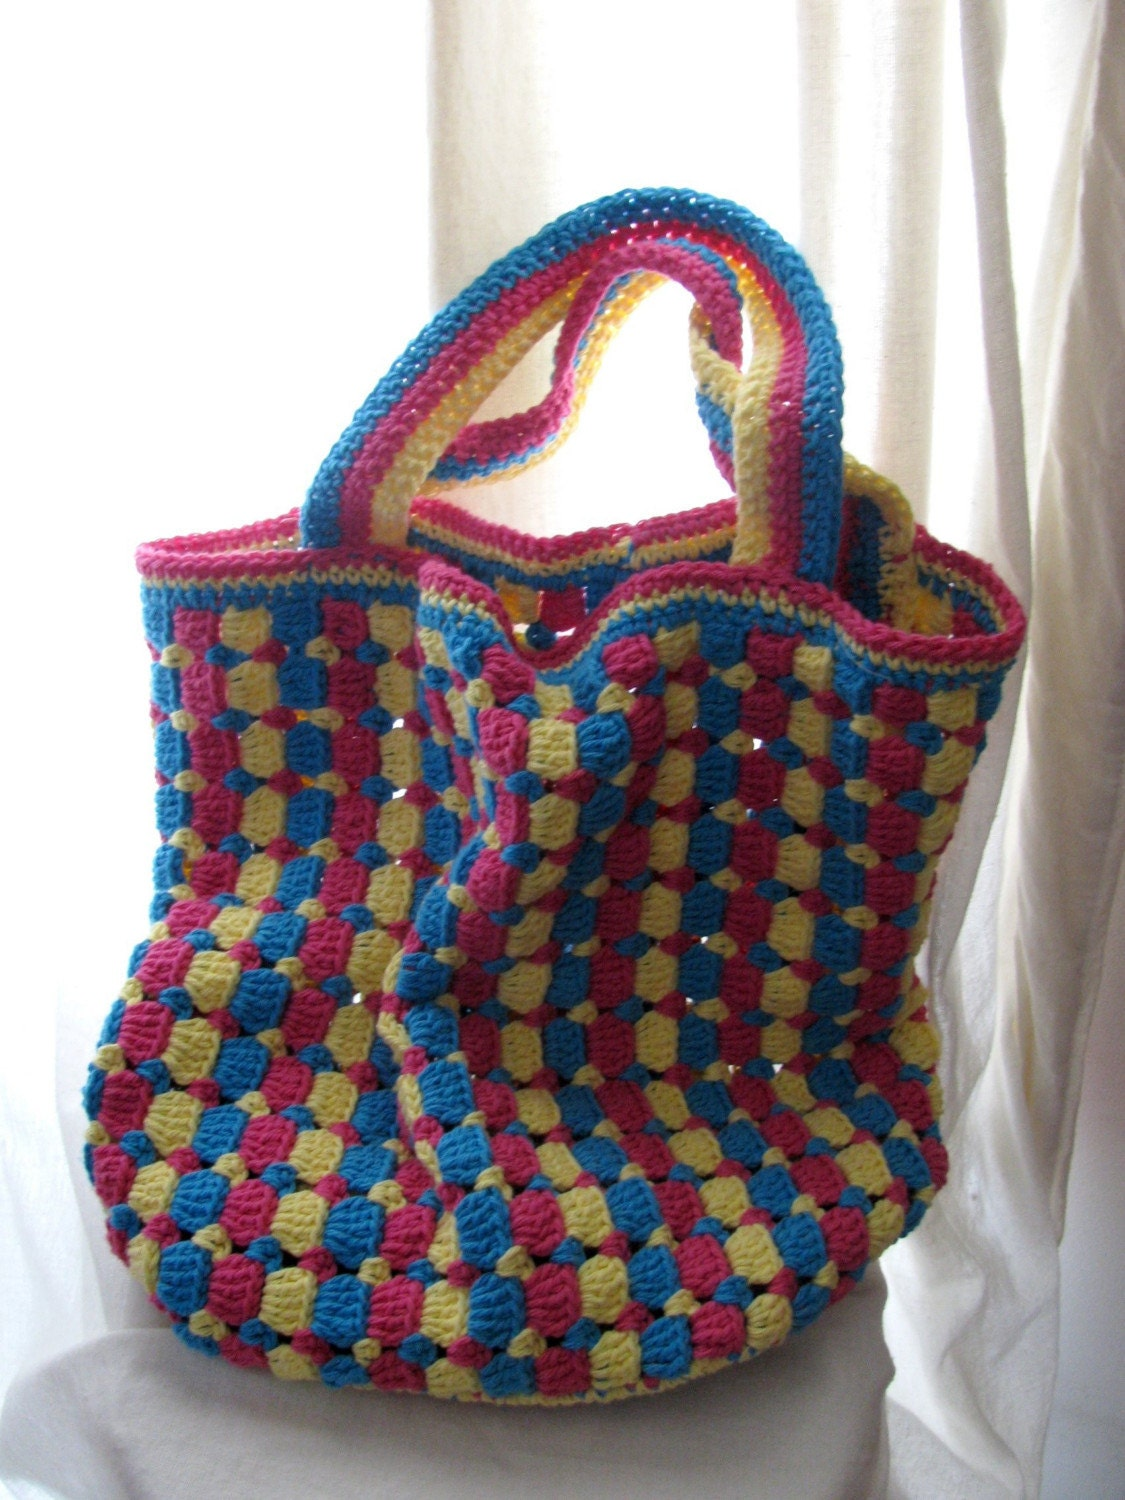 Crochet Bag Pattern Pdf : Citrus Tote Bag Crochet Pattern PDF by pepperberry on Etsy